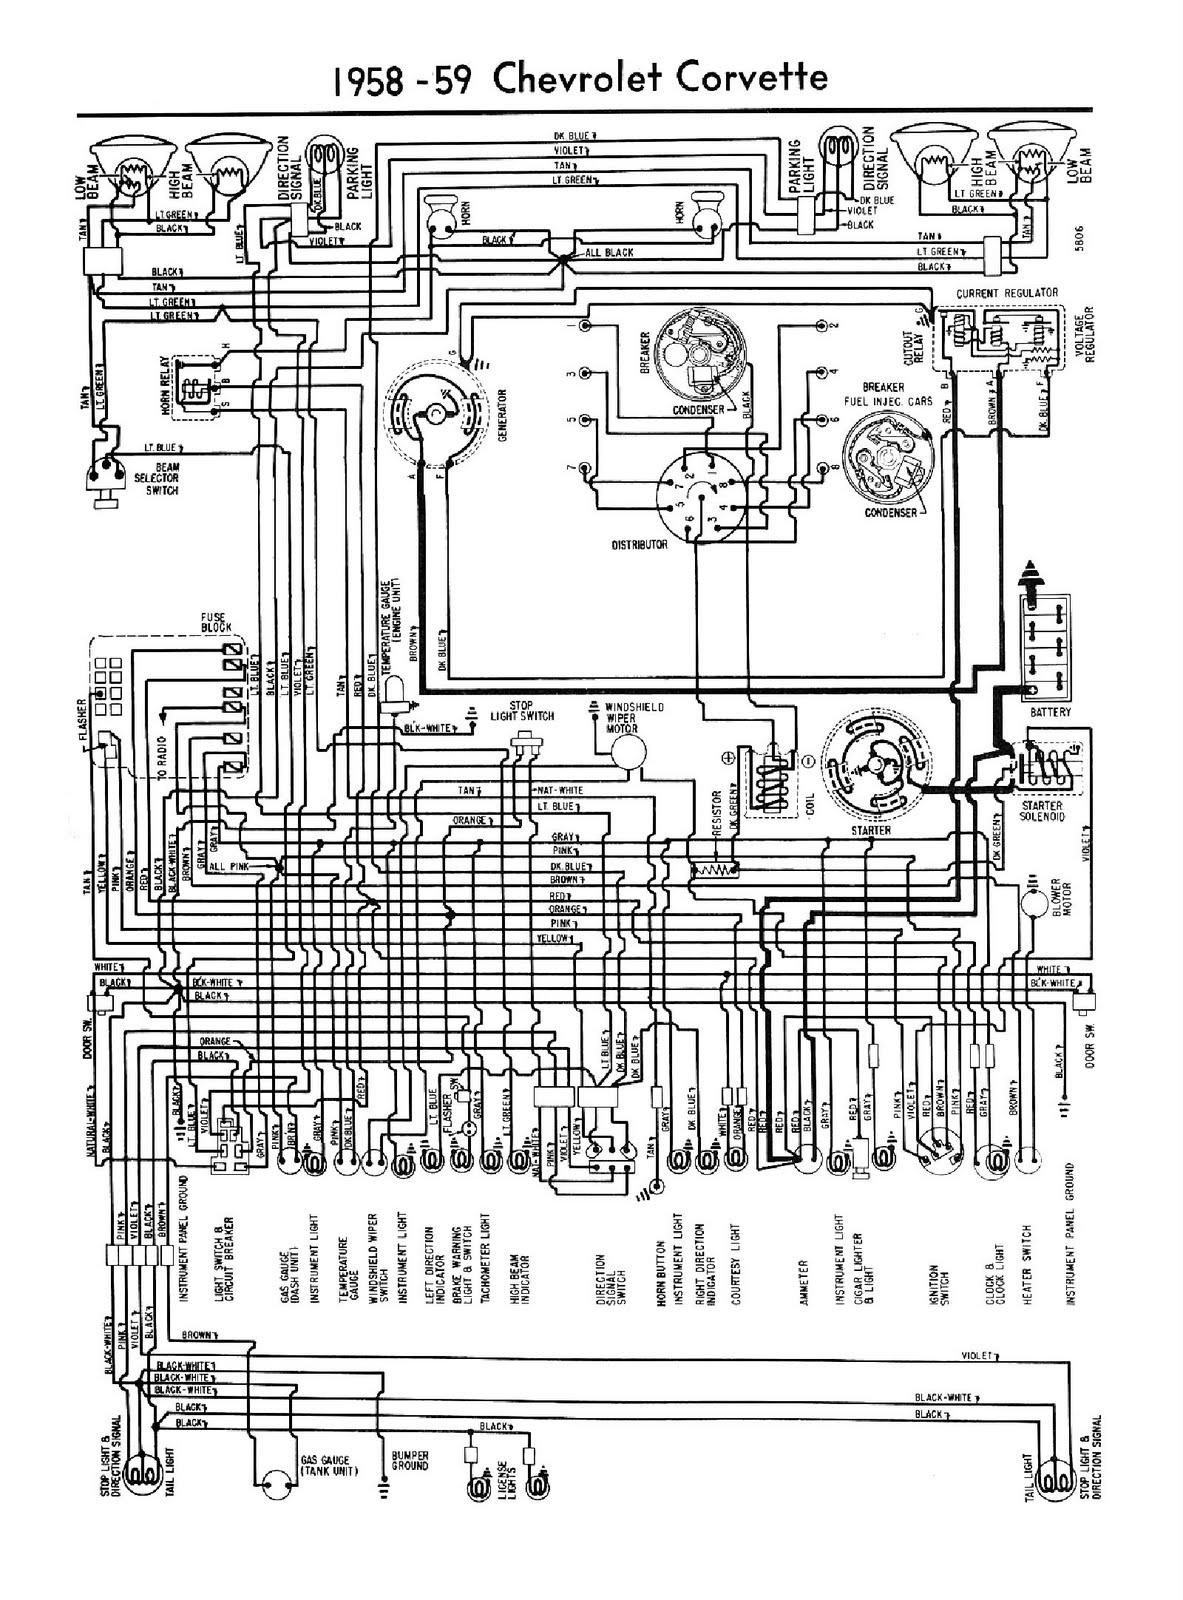 1958 Oldsmobile Ignition Switch Wiring Diagram Manual Of 1960 Ford